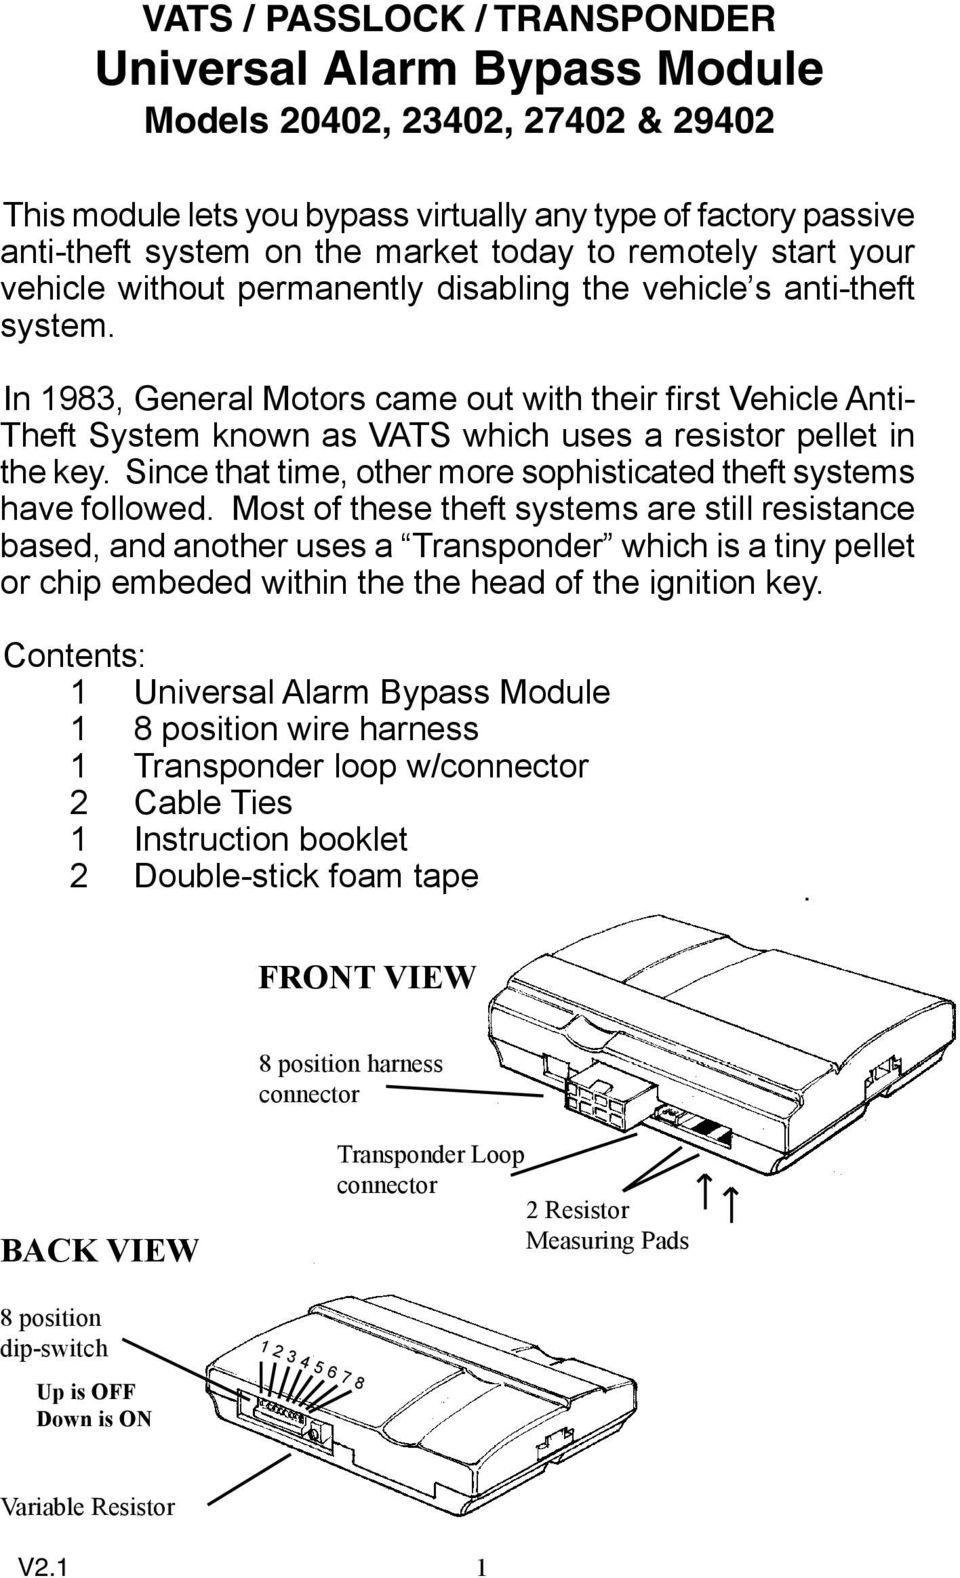 Vats Passlock Transponder Universal Alarm Bypass Module Models 2004 Dodge Caravan 38lwiring Diagramoemfactory System In 1983 General Motors Came Out With Their First Vehicle Anti Theft Known